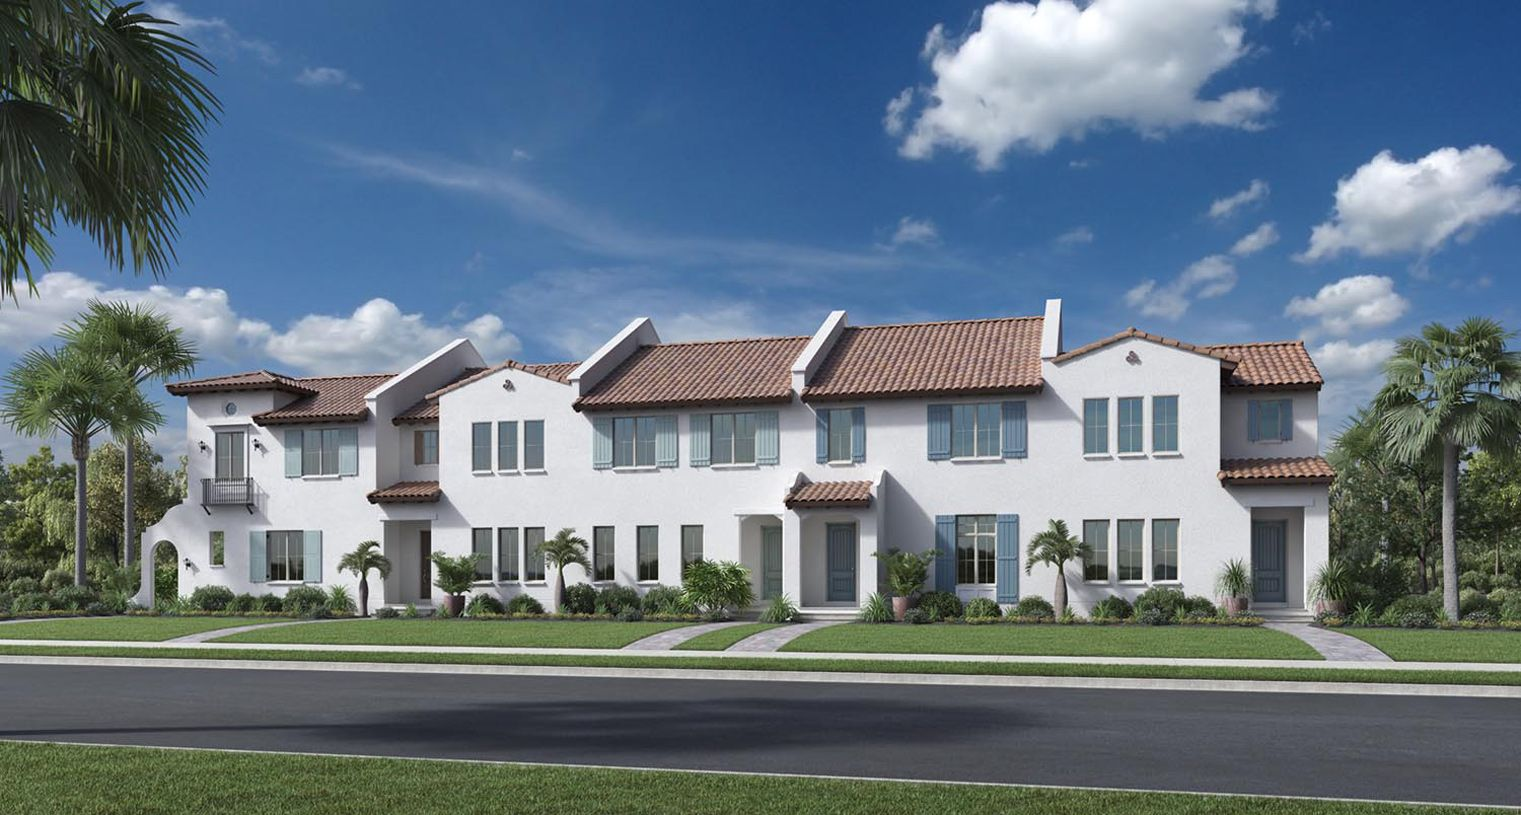 Lakeshore Townhomes New Homes In Winter Garden Fl By